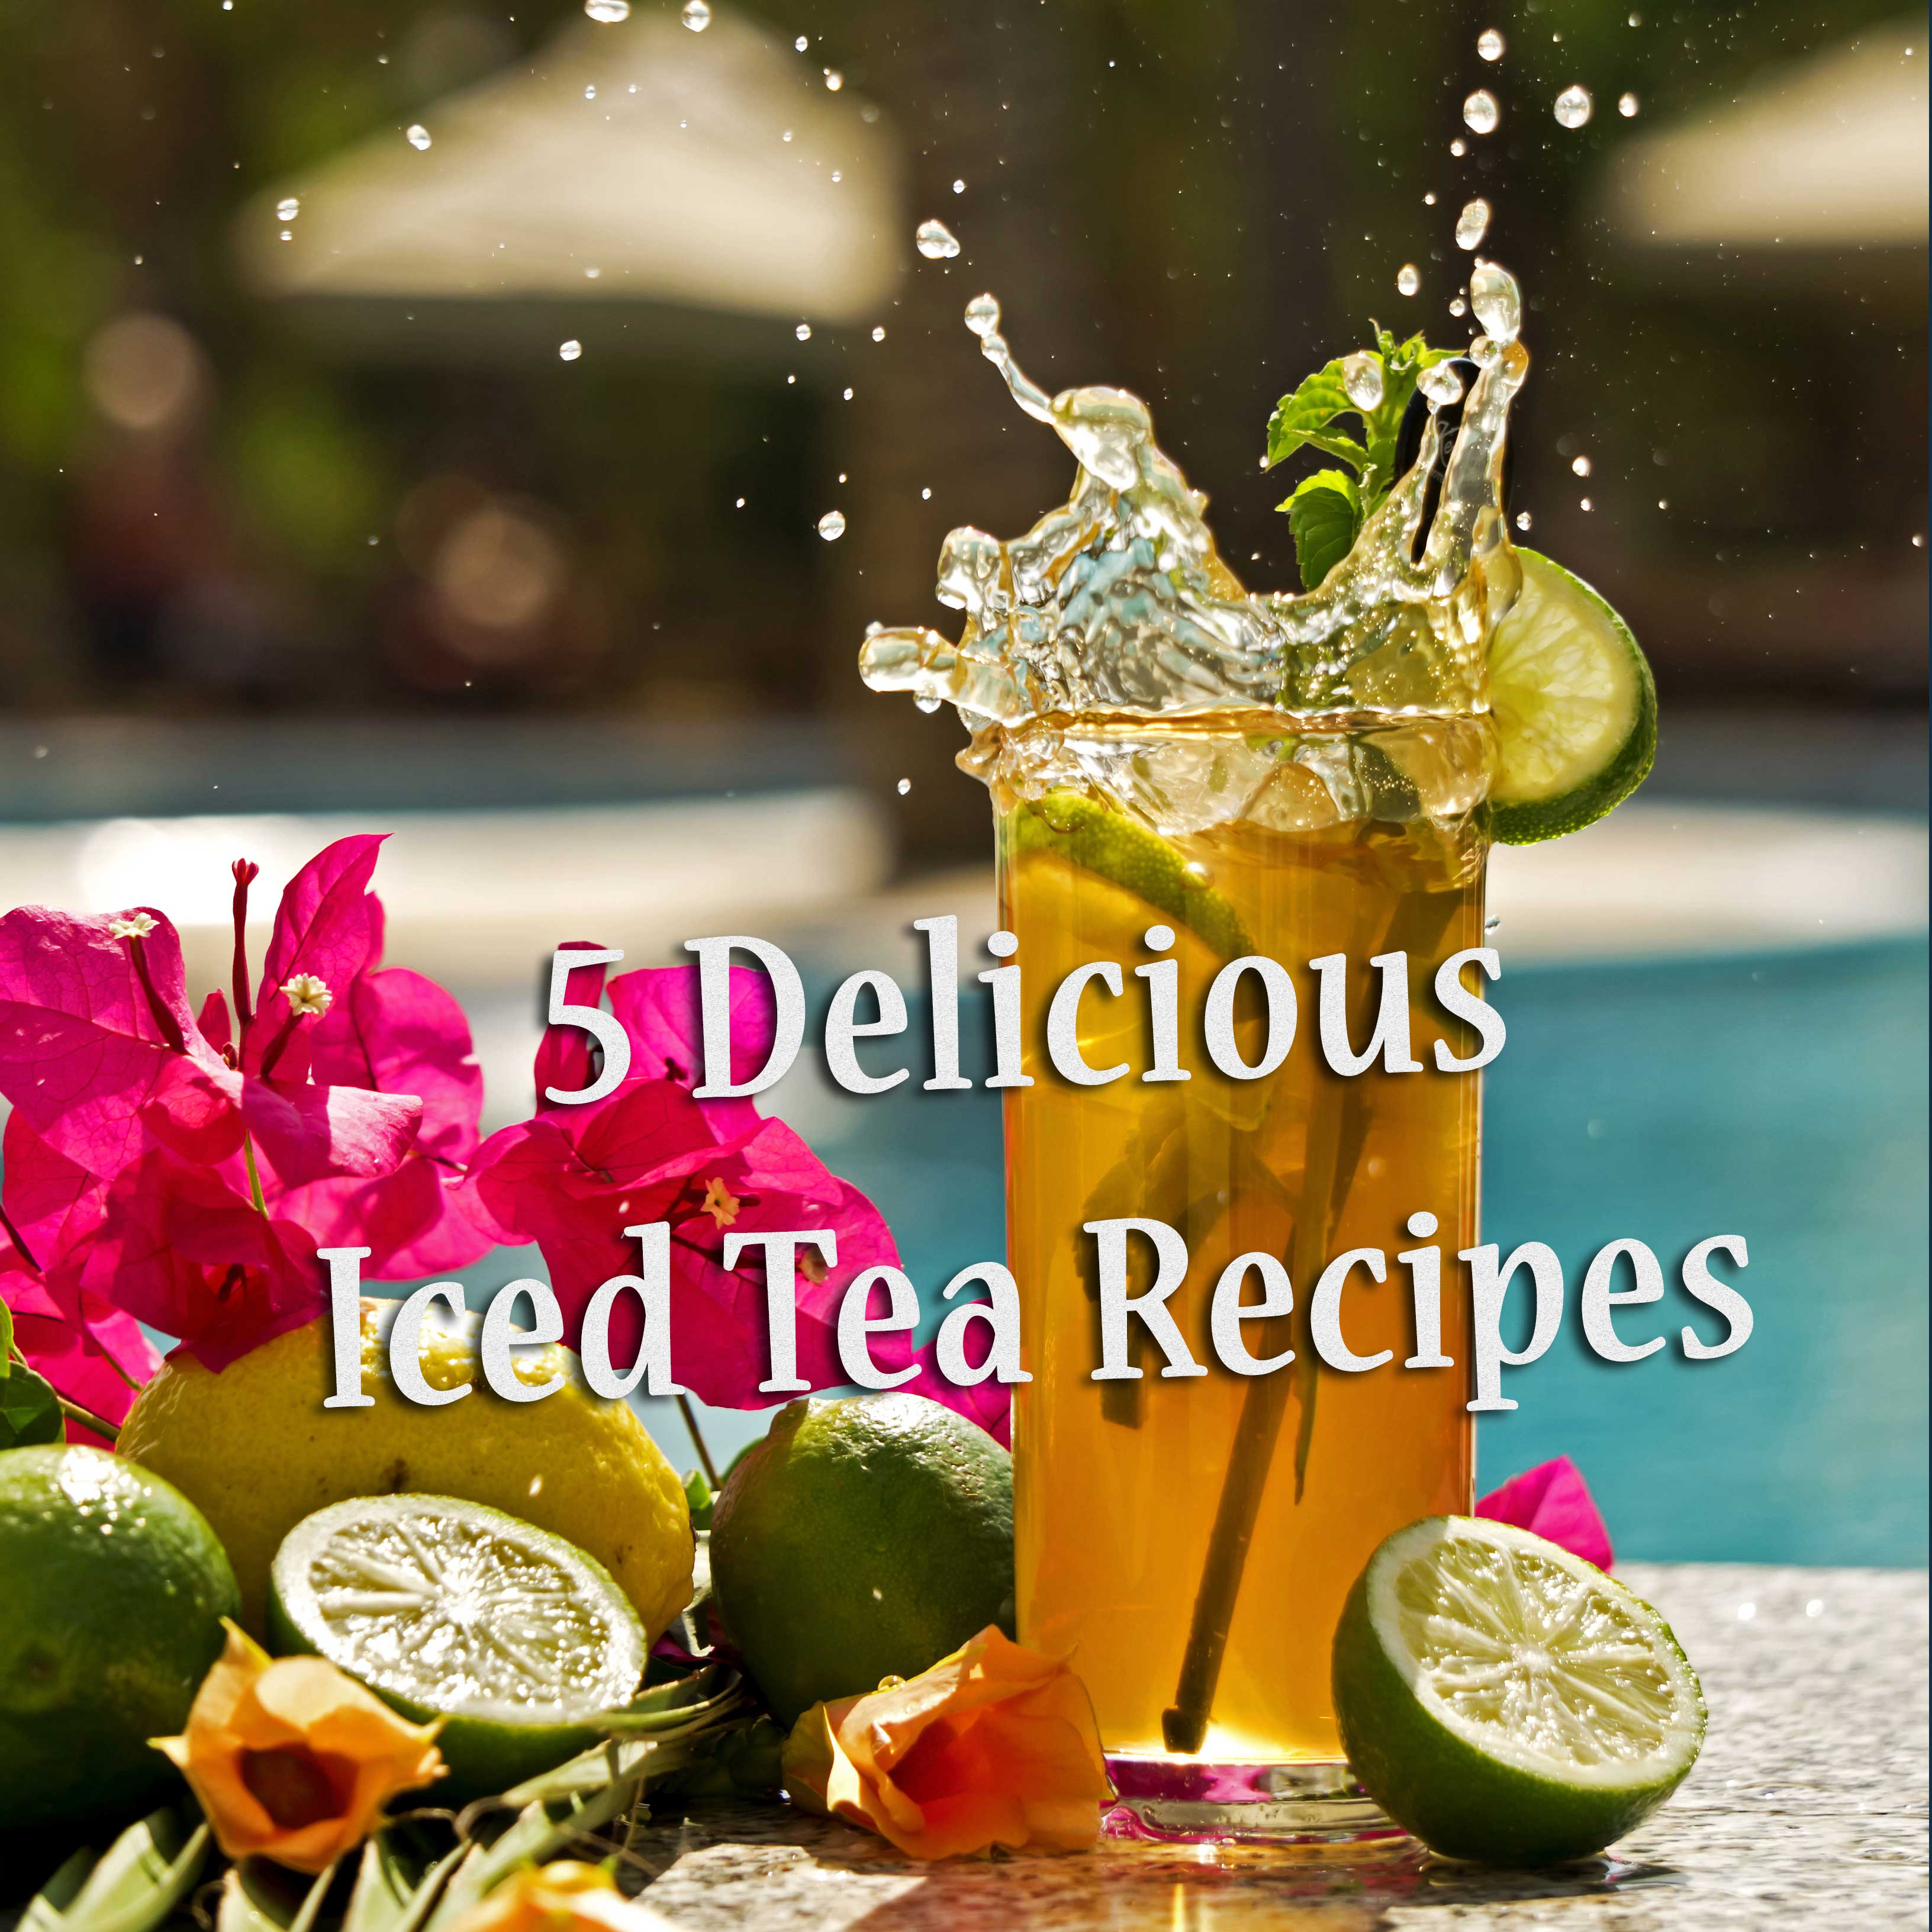 Recipes: 5 Delicious Iced Tea Recipes